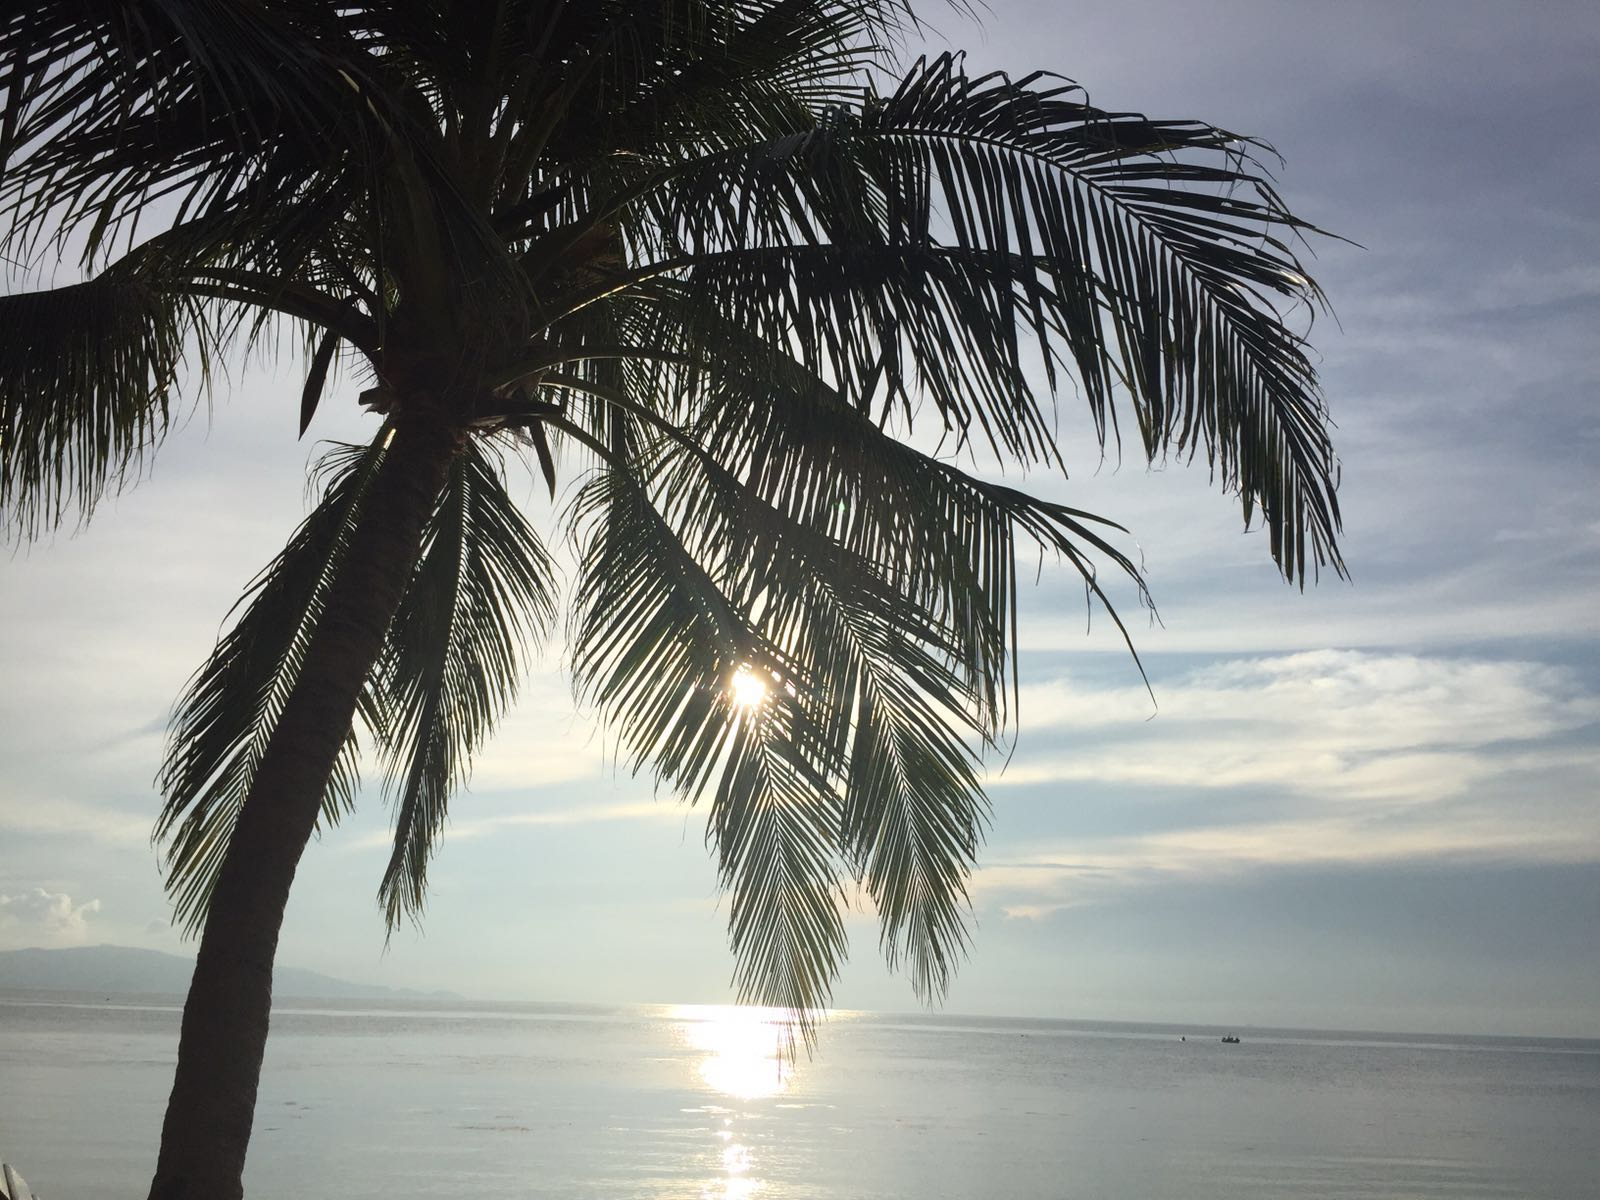 http://hippieintheheart.com/backpacking-koh-phangan/ Backpacking Koh Phangan